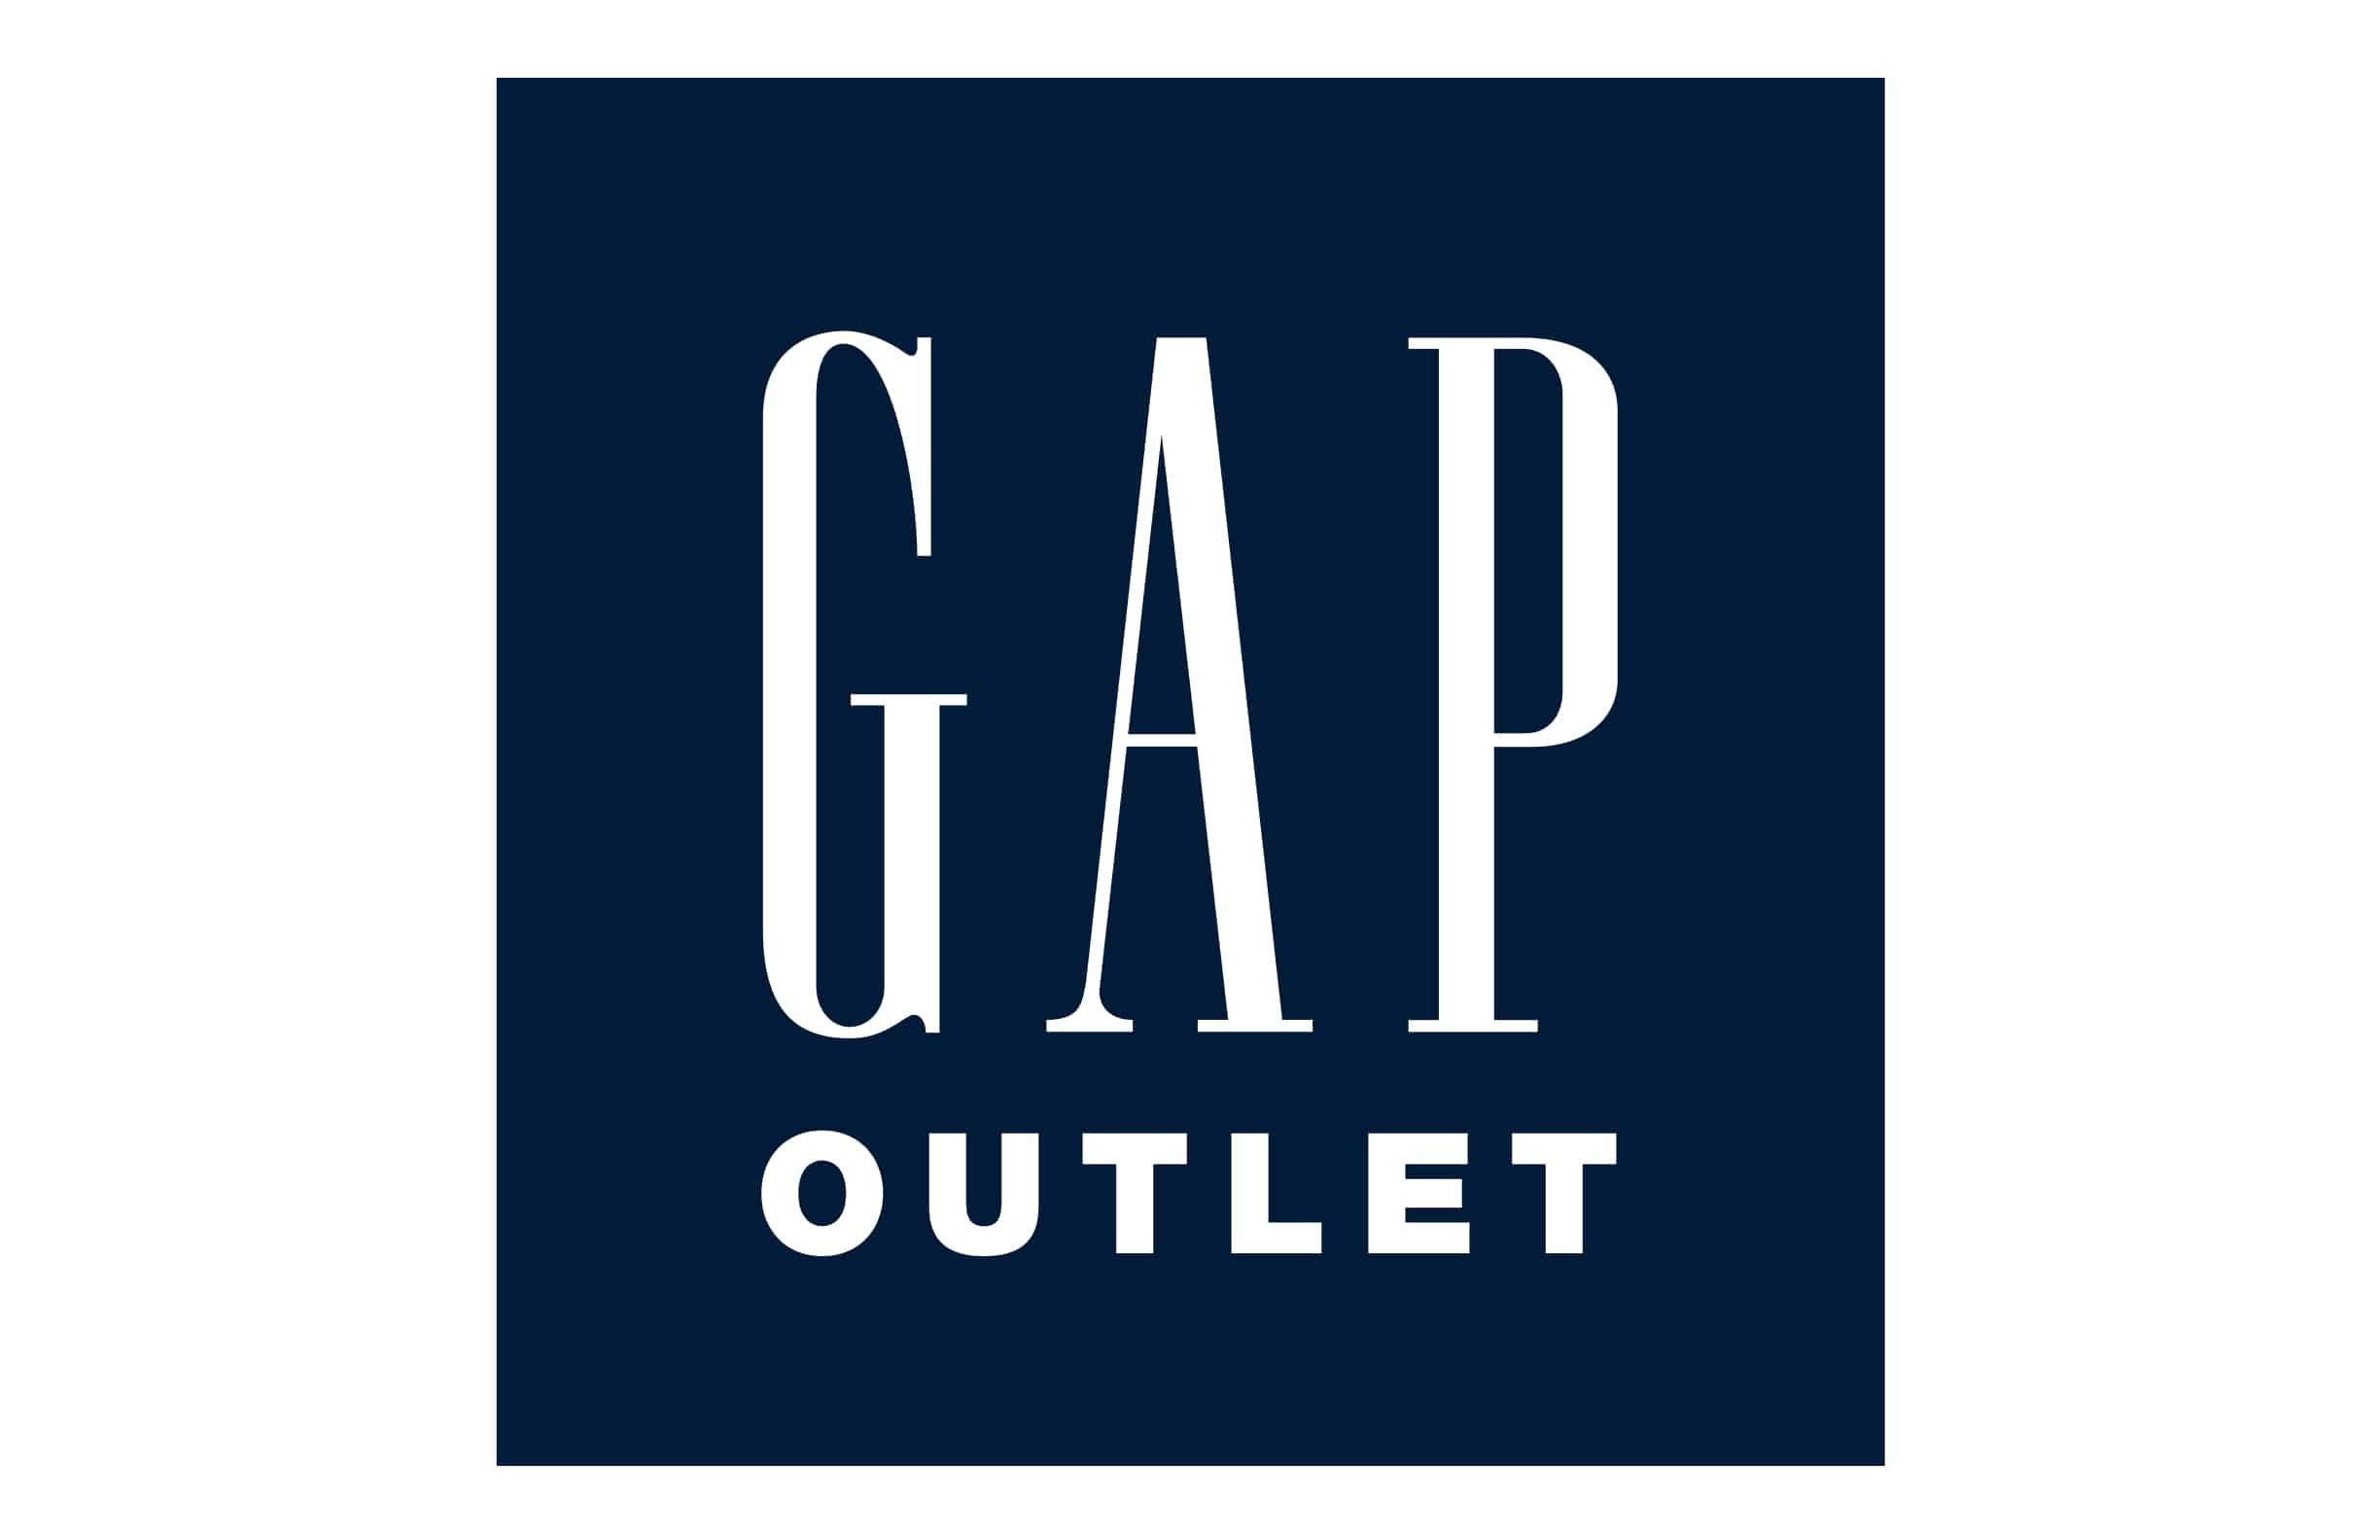 Gap outlet coupon code